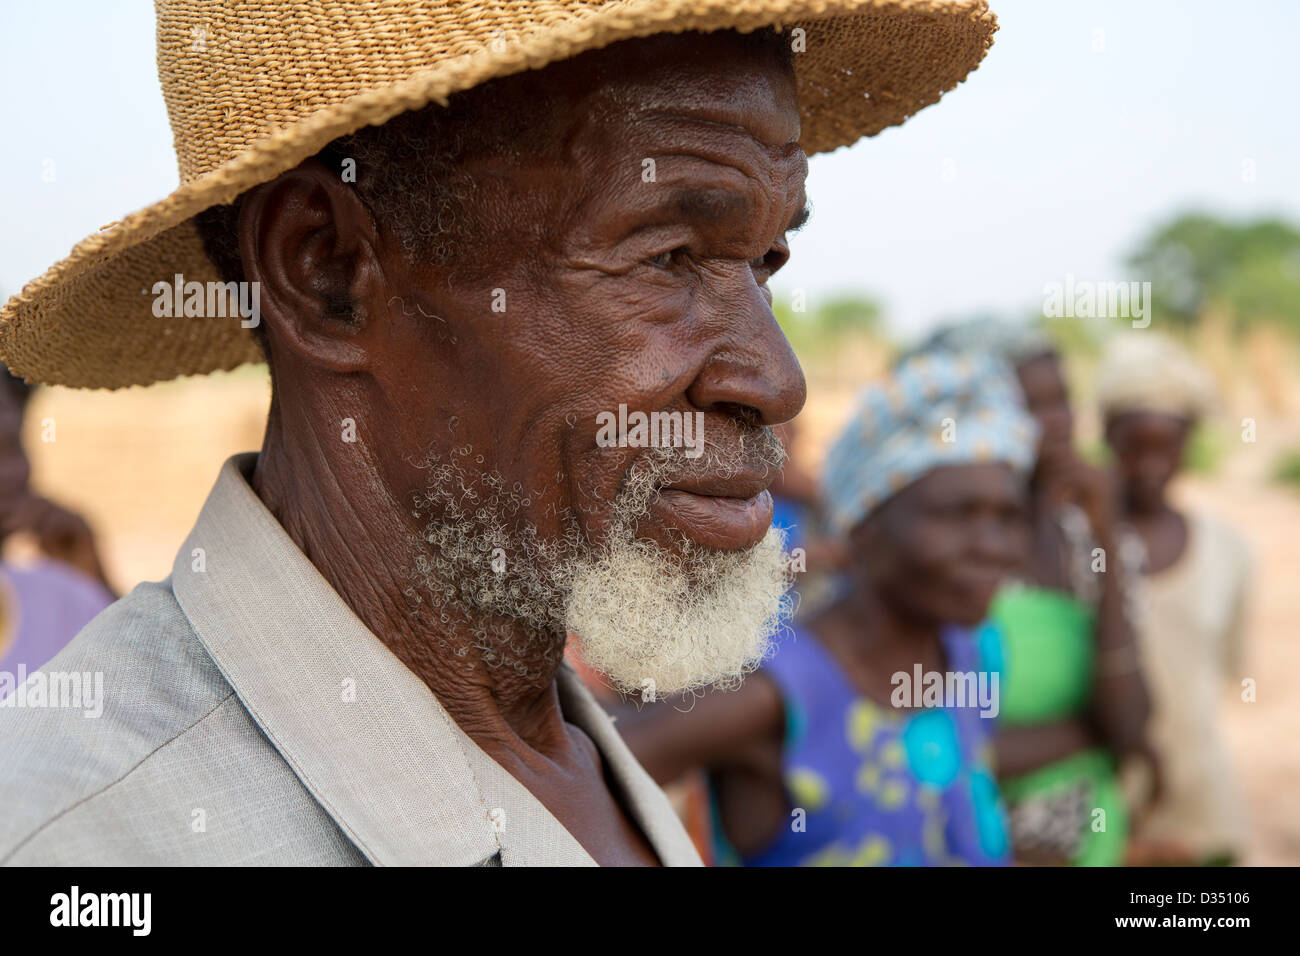 Reo, Burkina Faso, May 2012:  A community elder - Stock Image